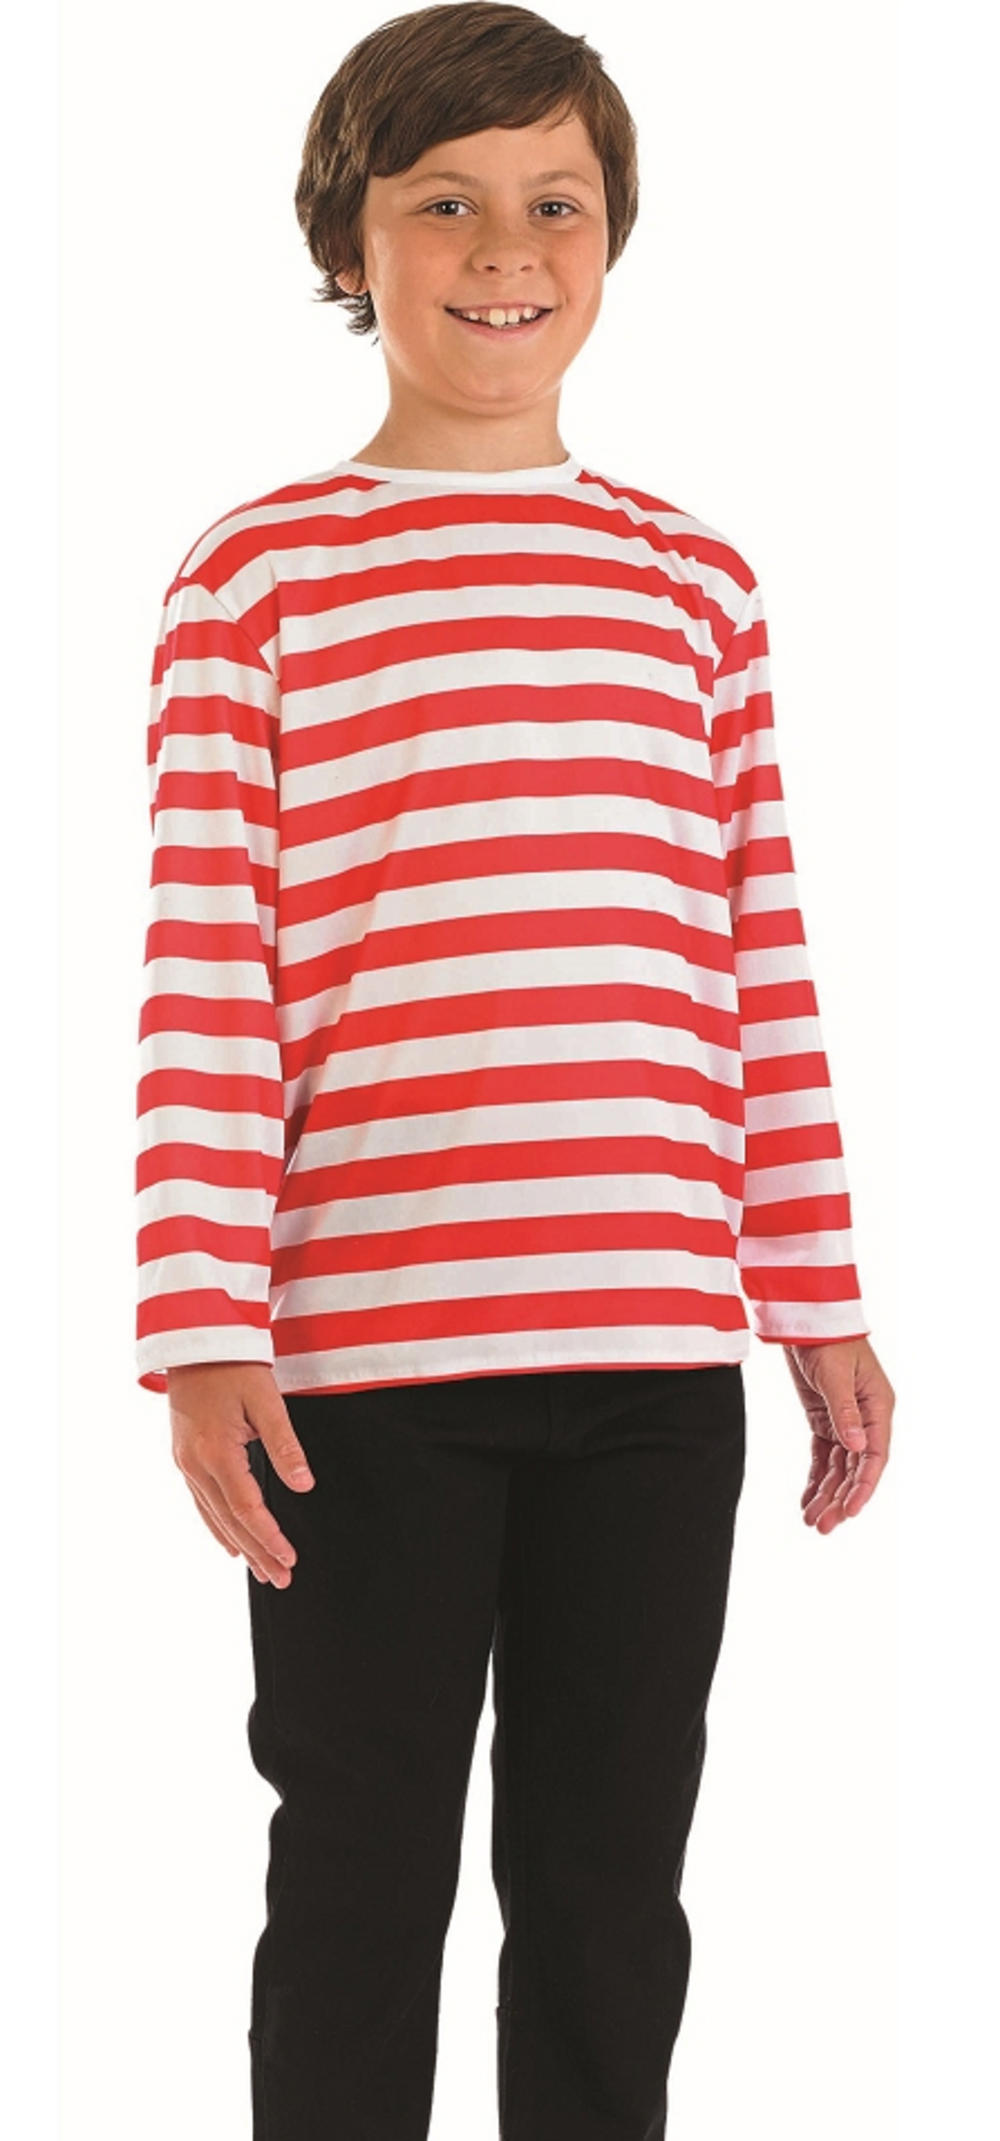 Shop for striped sweater online at Target. Free shipping on purchases over $35 and save 5% every day with your Target REDcard.